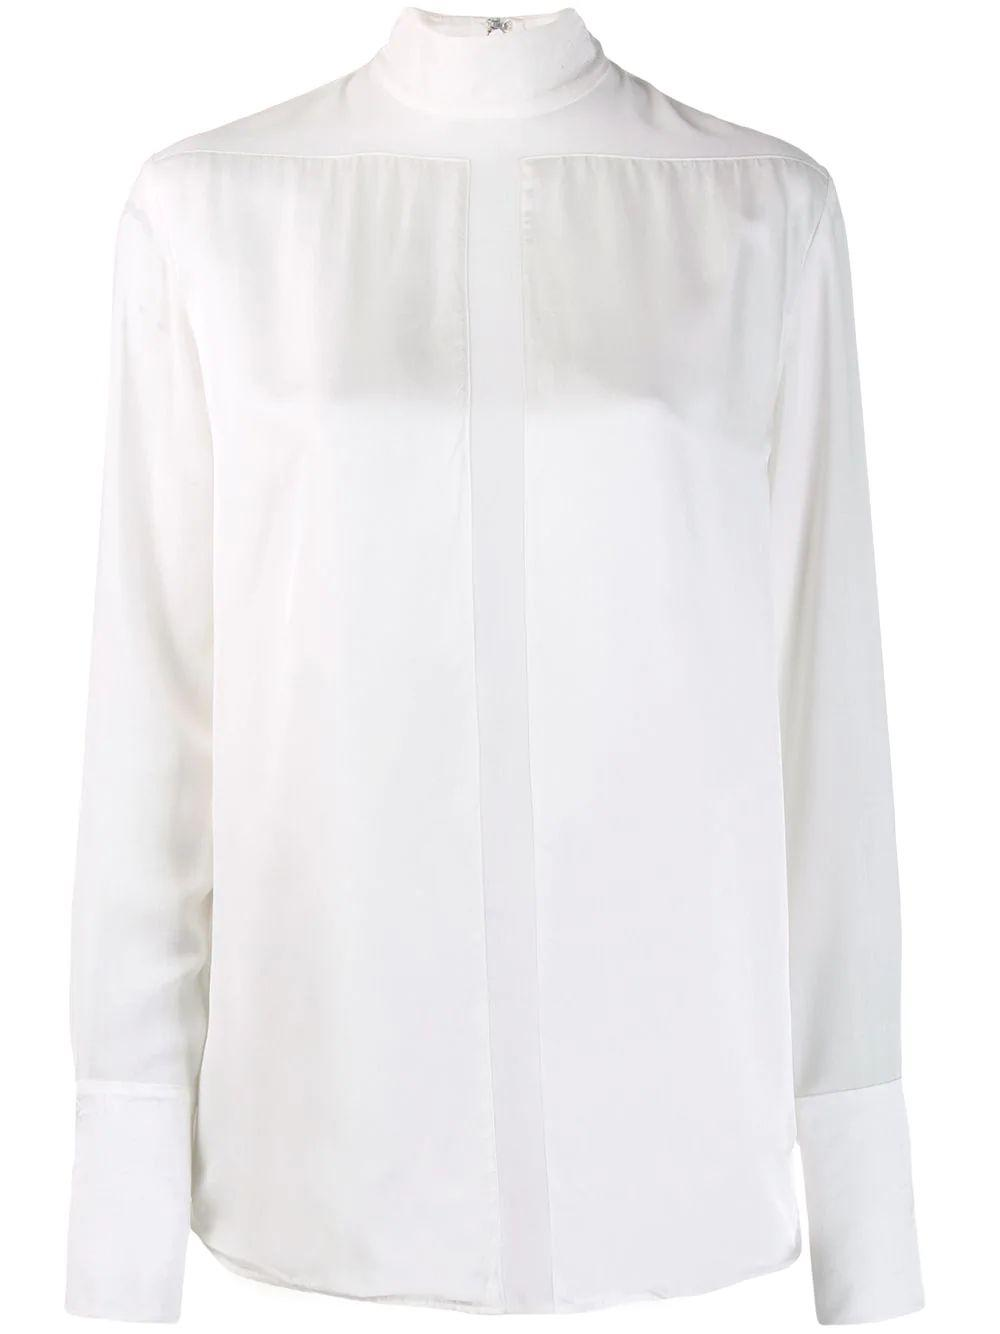 Long Sleeve Satin Sheer Panel Blouse